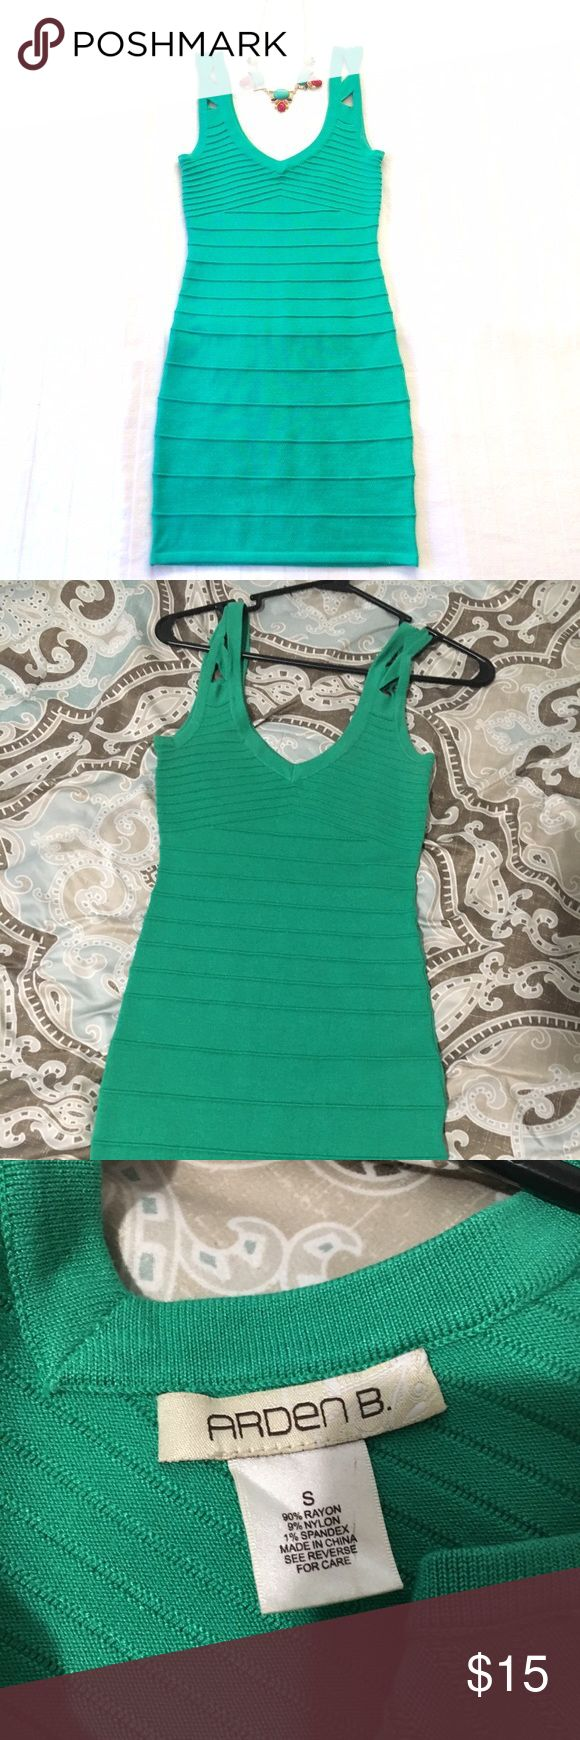 Women's green bodycon mini dress. Only worn ONCE! This green mini dress from Arden B is perfect for a night out! The material is form fitting with plenty of stretch to really show off your curves! Excellent condition! Arden B Dresses Mini